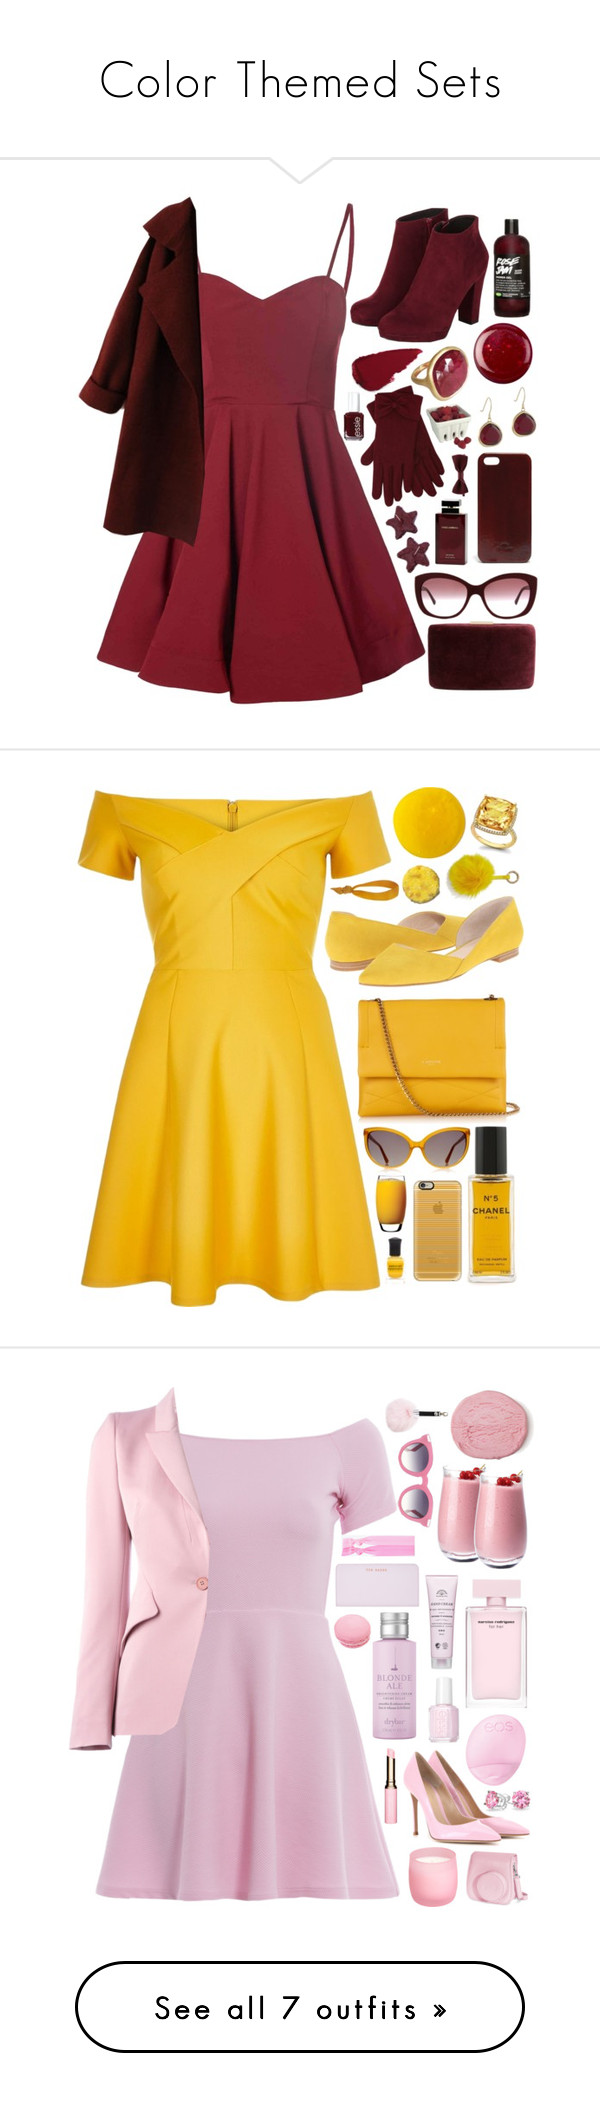 """""""Color Themed Sets"""" by onewithbirds ❤ liked on Polyvore featuring Glamorous, Karen Kane, M&Co, Burberry, Essie, Dolce & Gabbana Fragrance, Artland, Kayu, Forever 21 and River Island"""